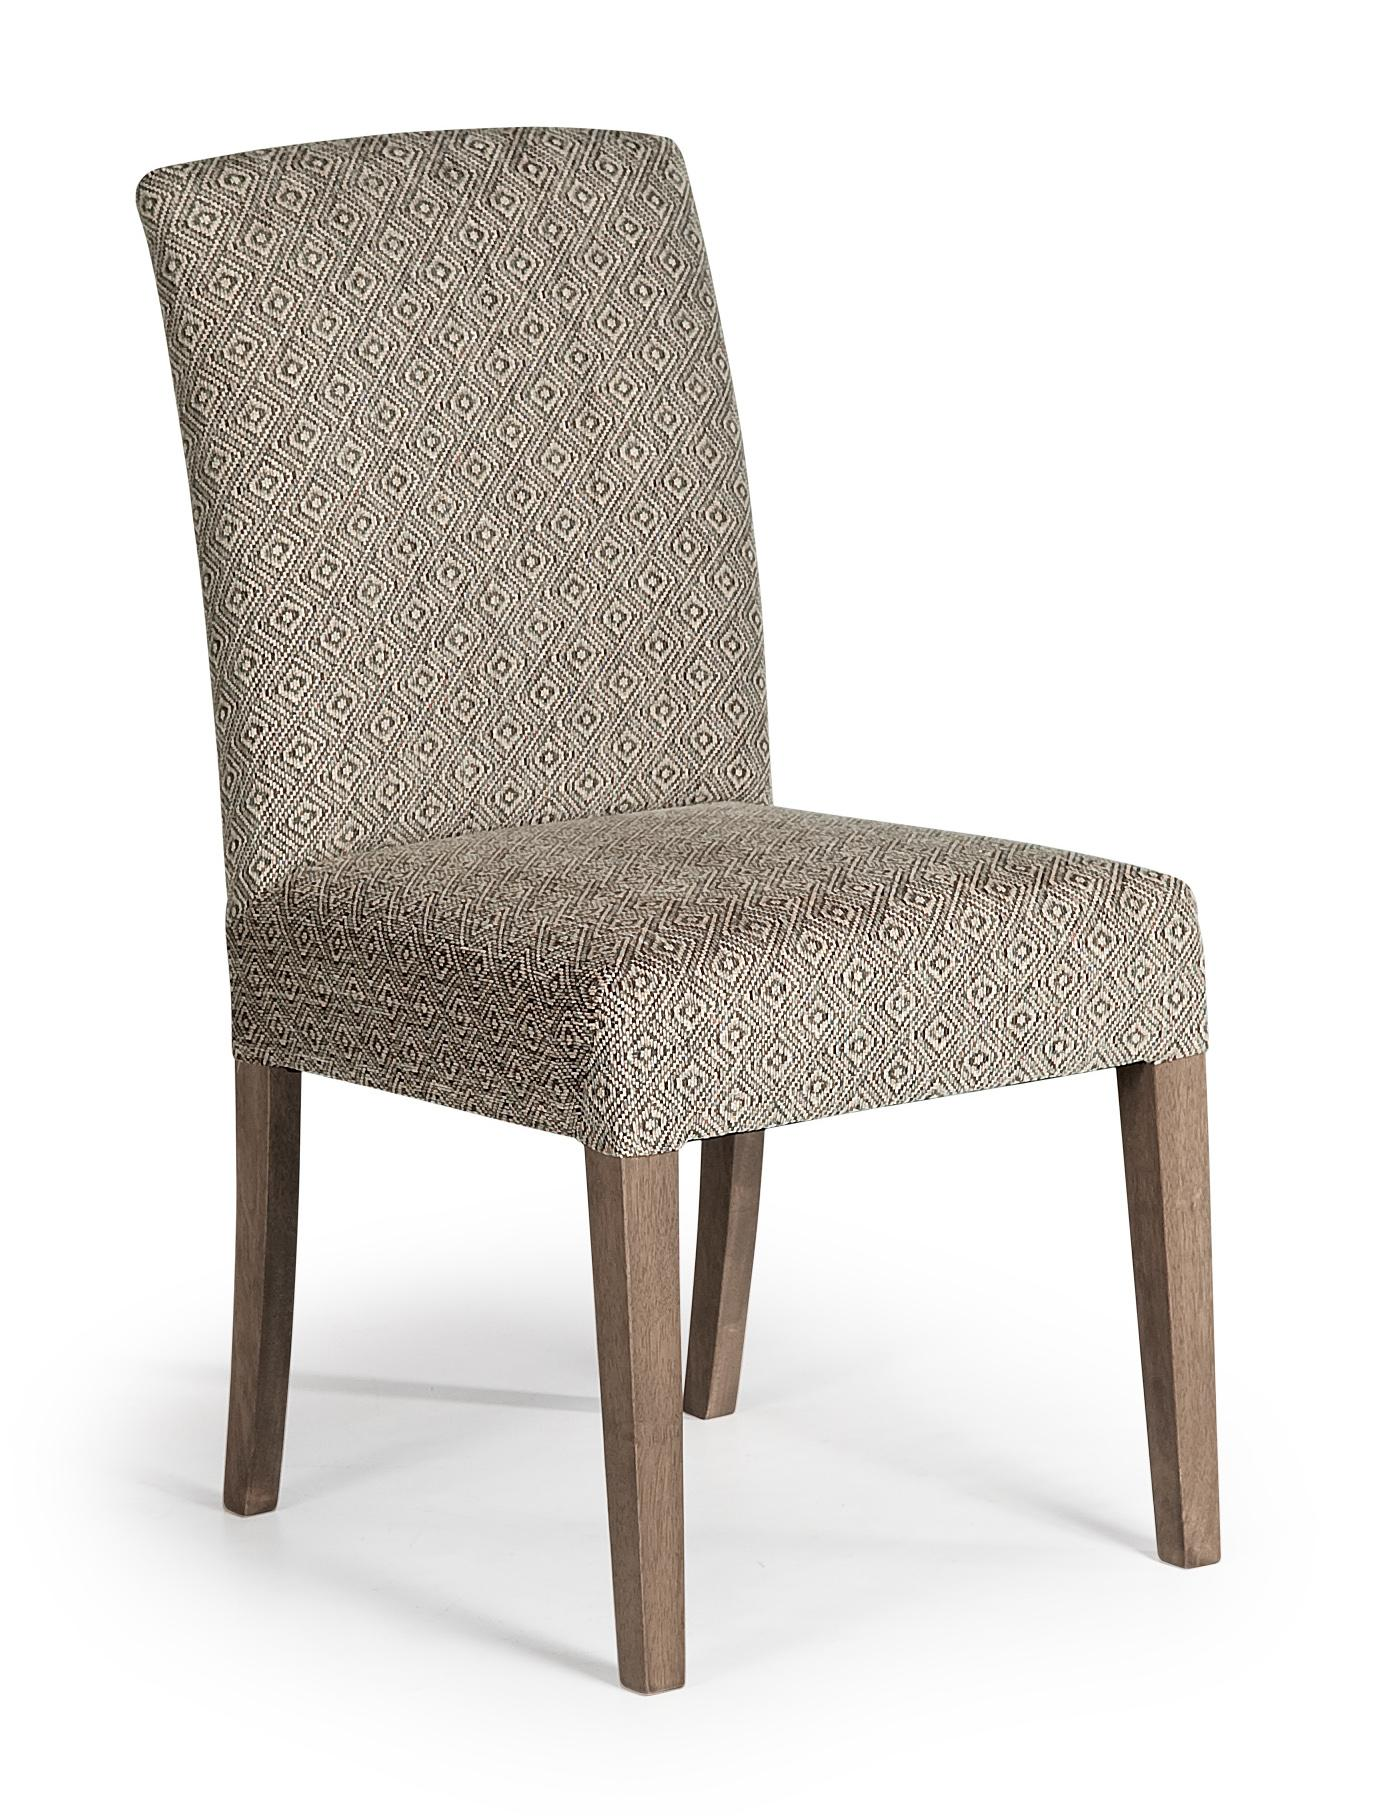 Best Home Furnishings Chairs - Dining Myer Chair - Item Number: 9780